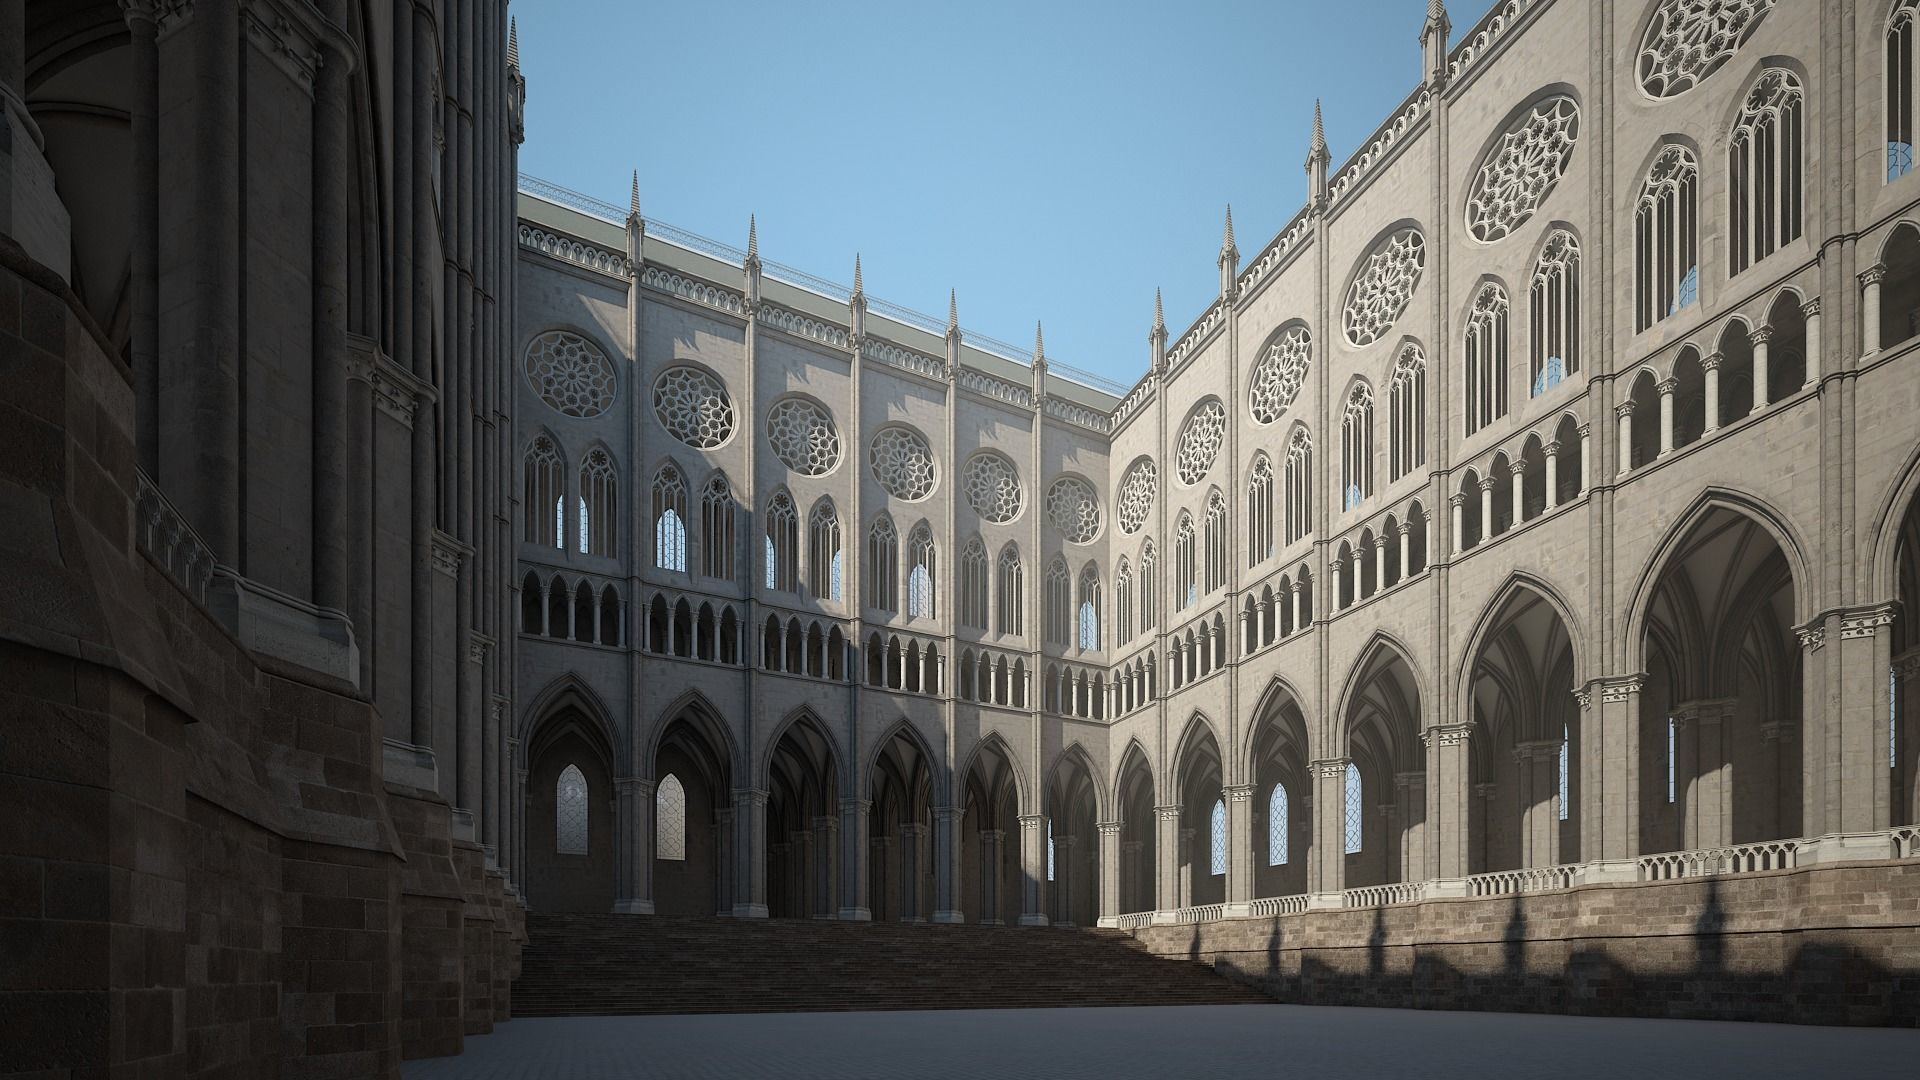 Courtyard of a Gothic Temple